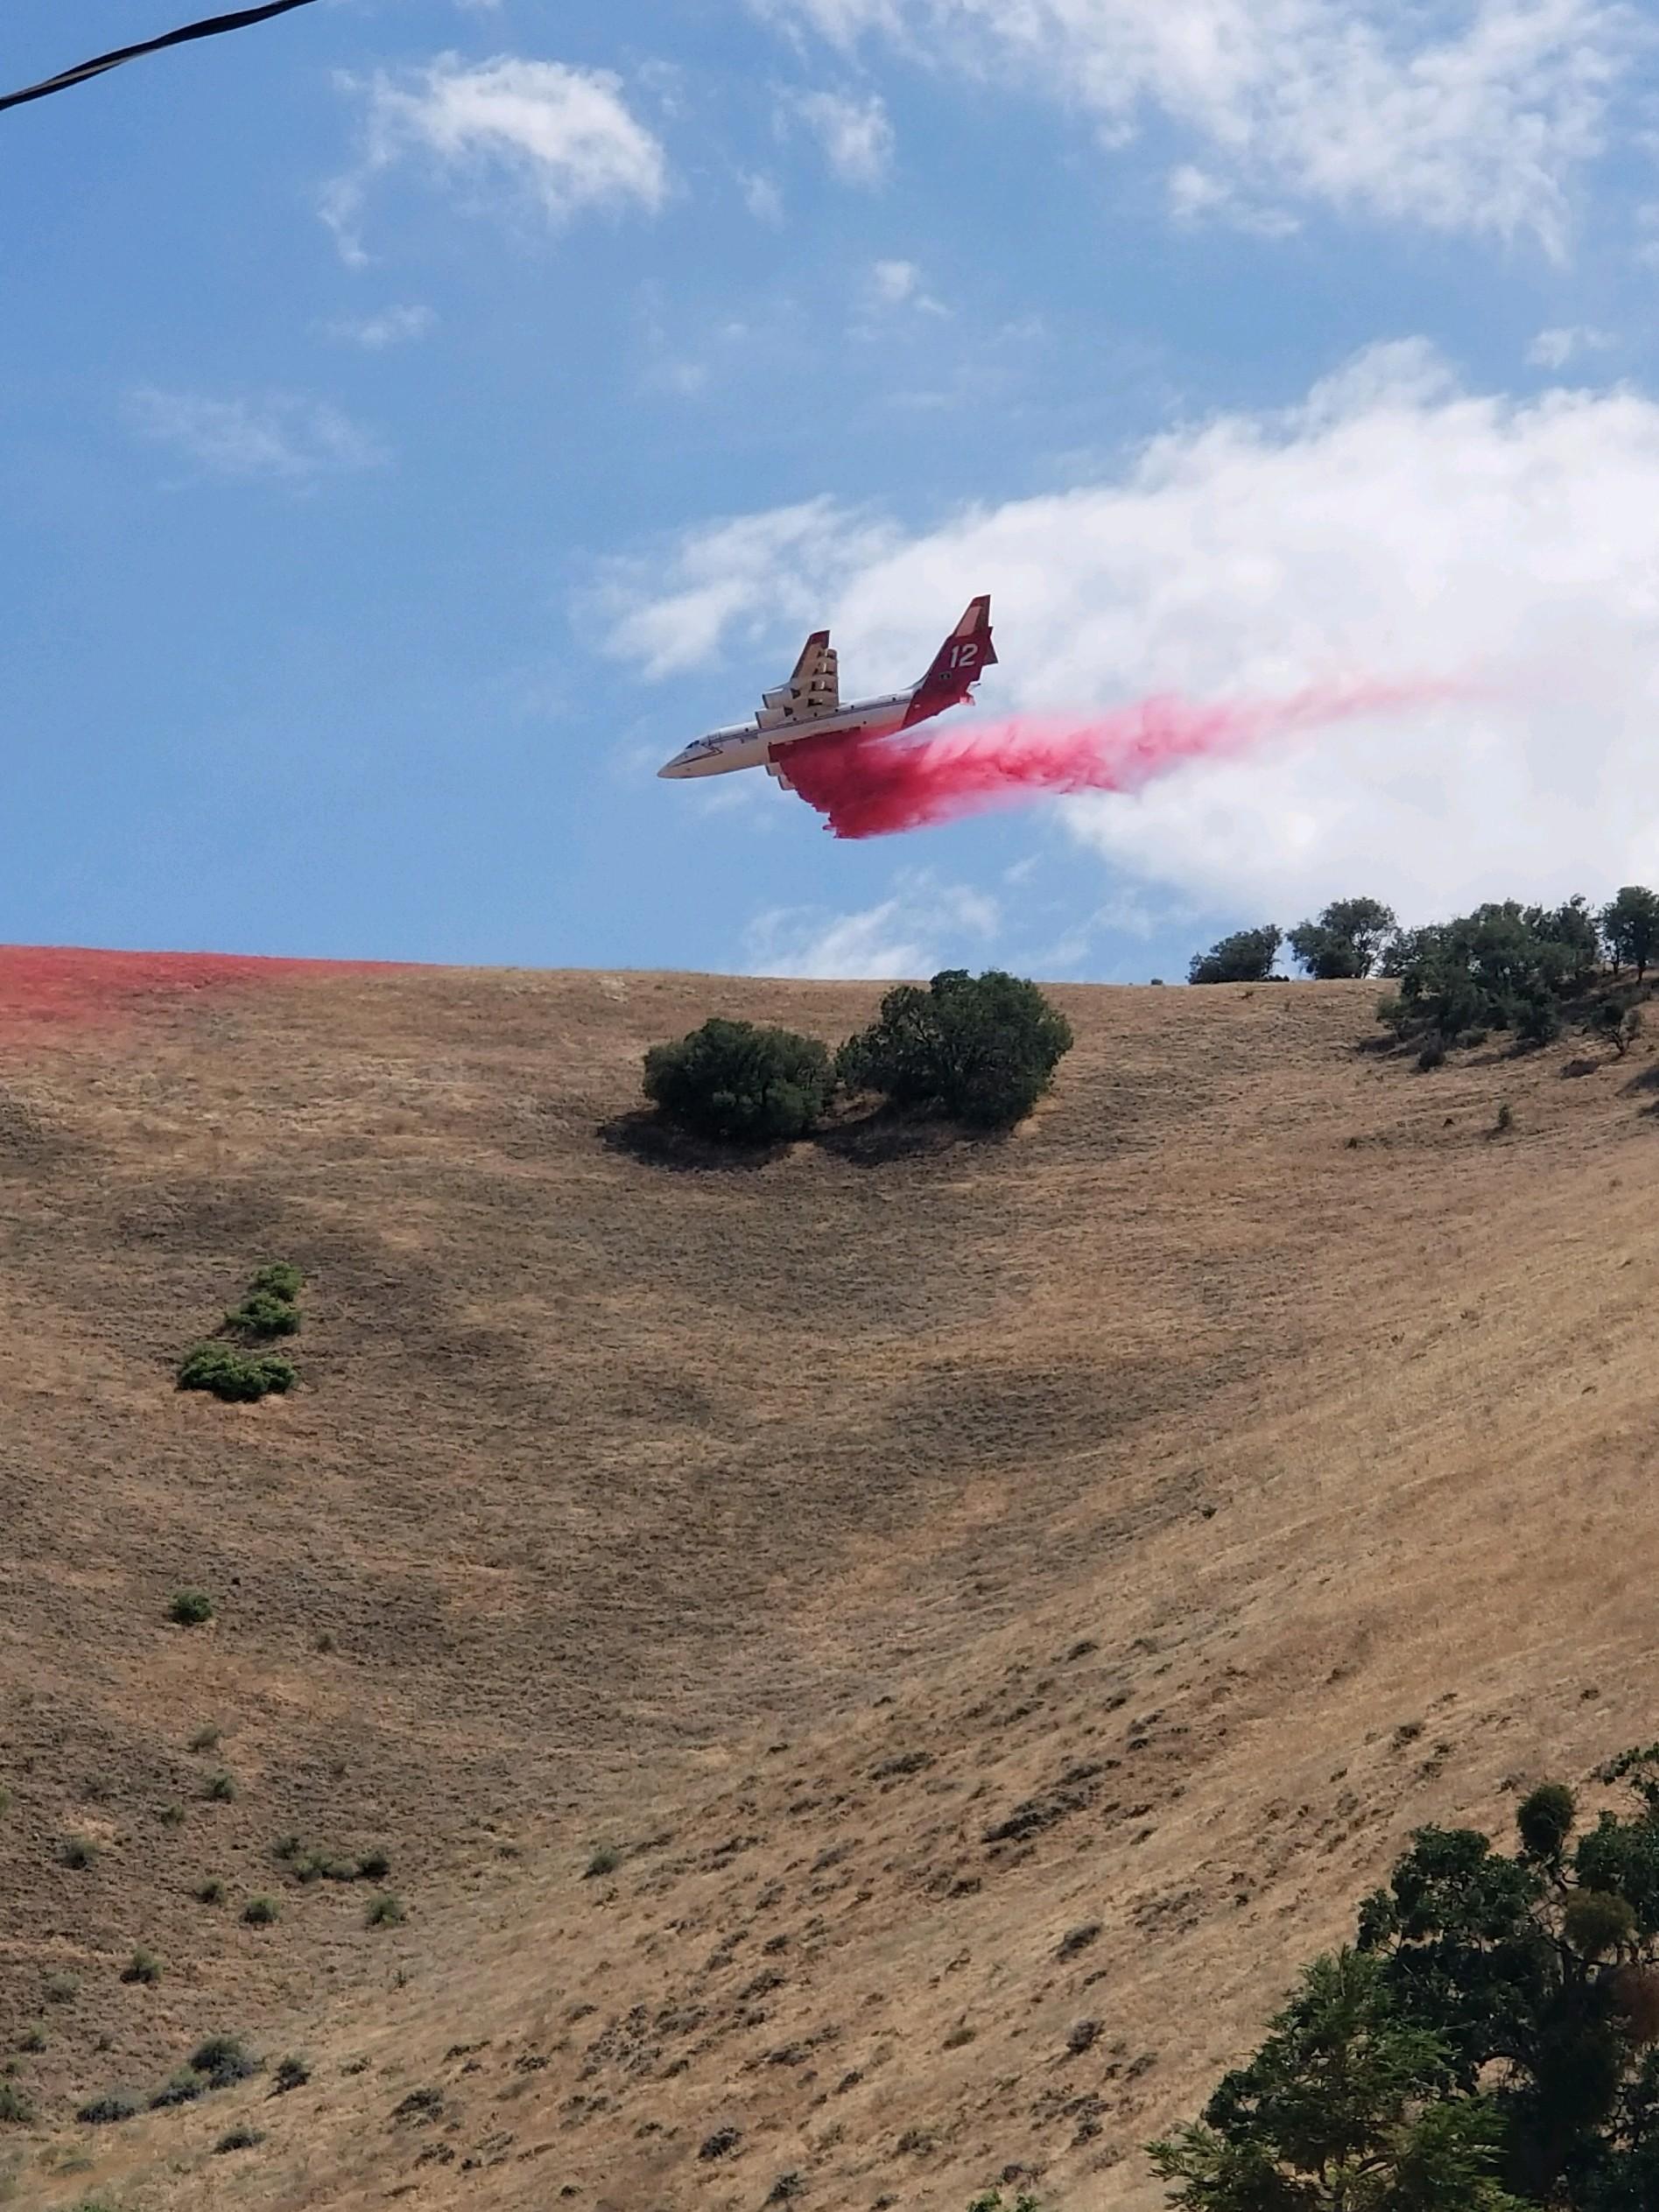 Shane Mead's shot of the BAe-146 dropping retardant.